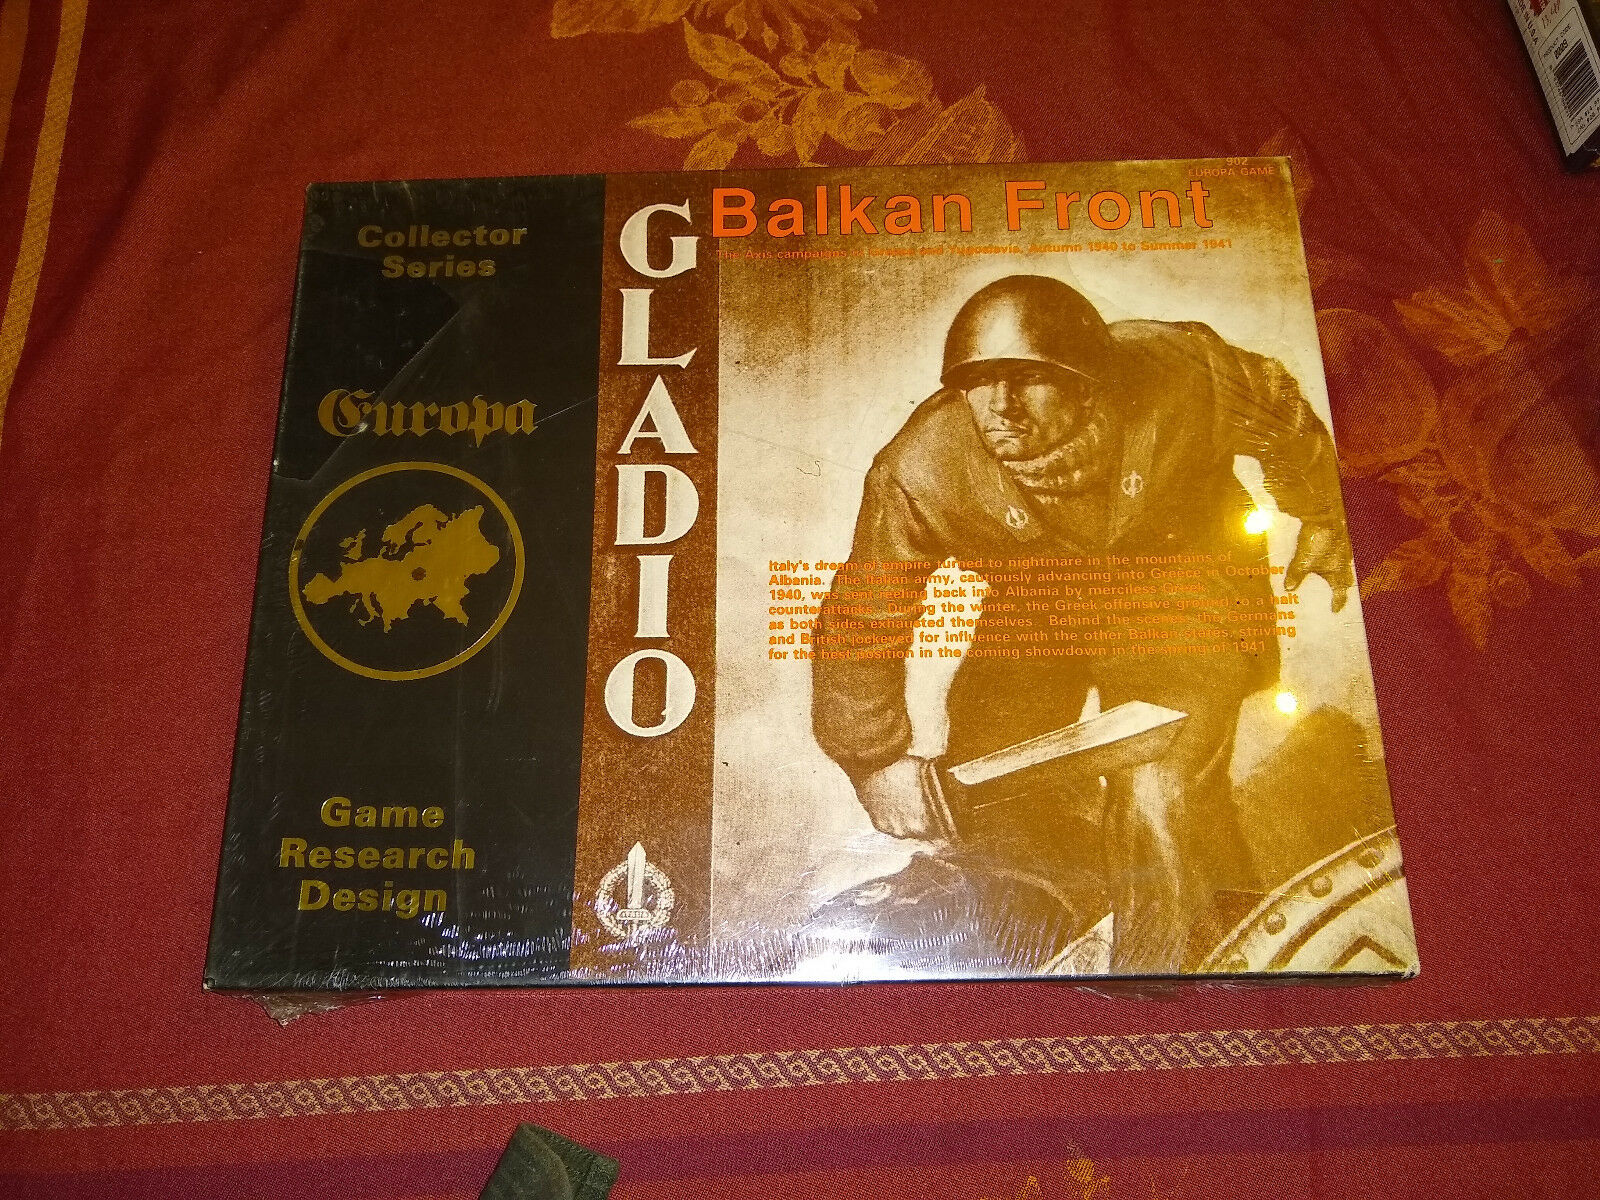 Gladio Balkan Front Europa Series 902 GRD Shrink Wrapped Unpunched